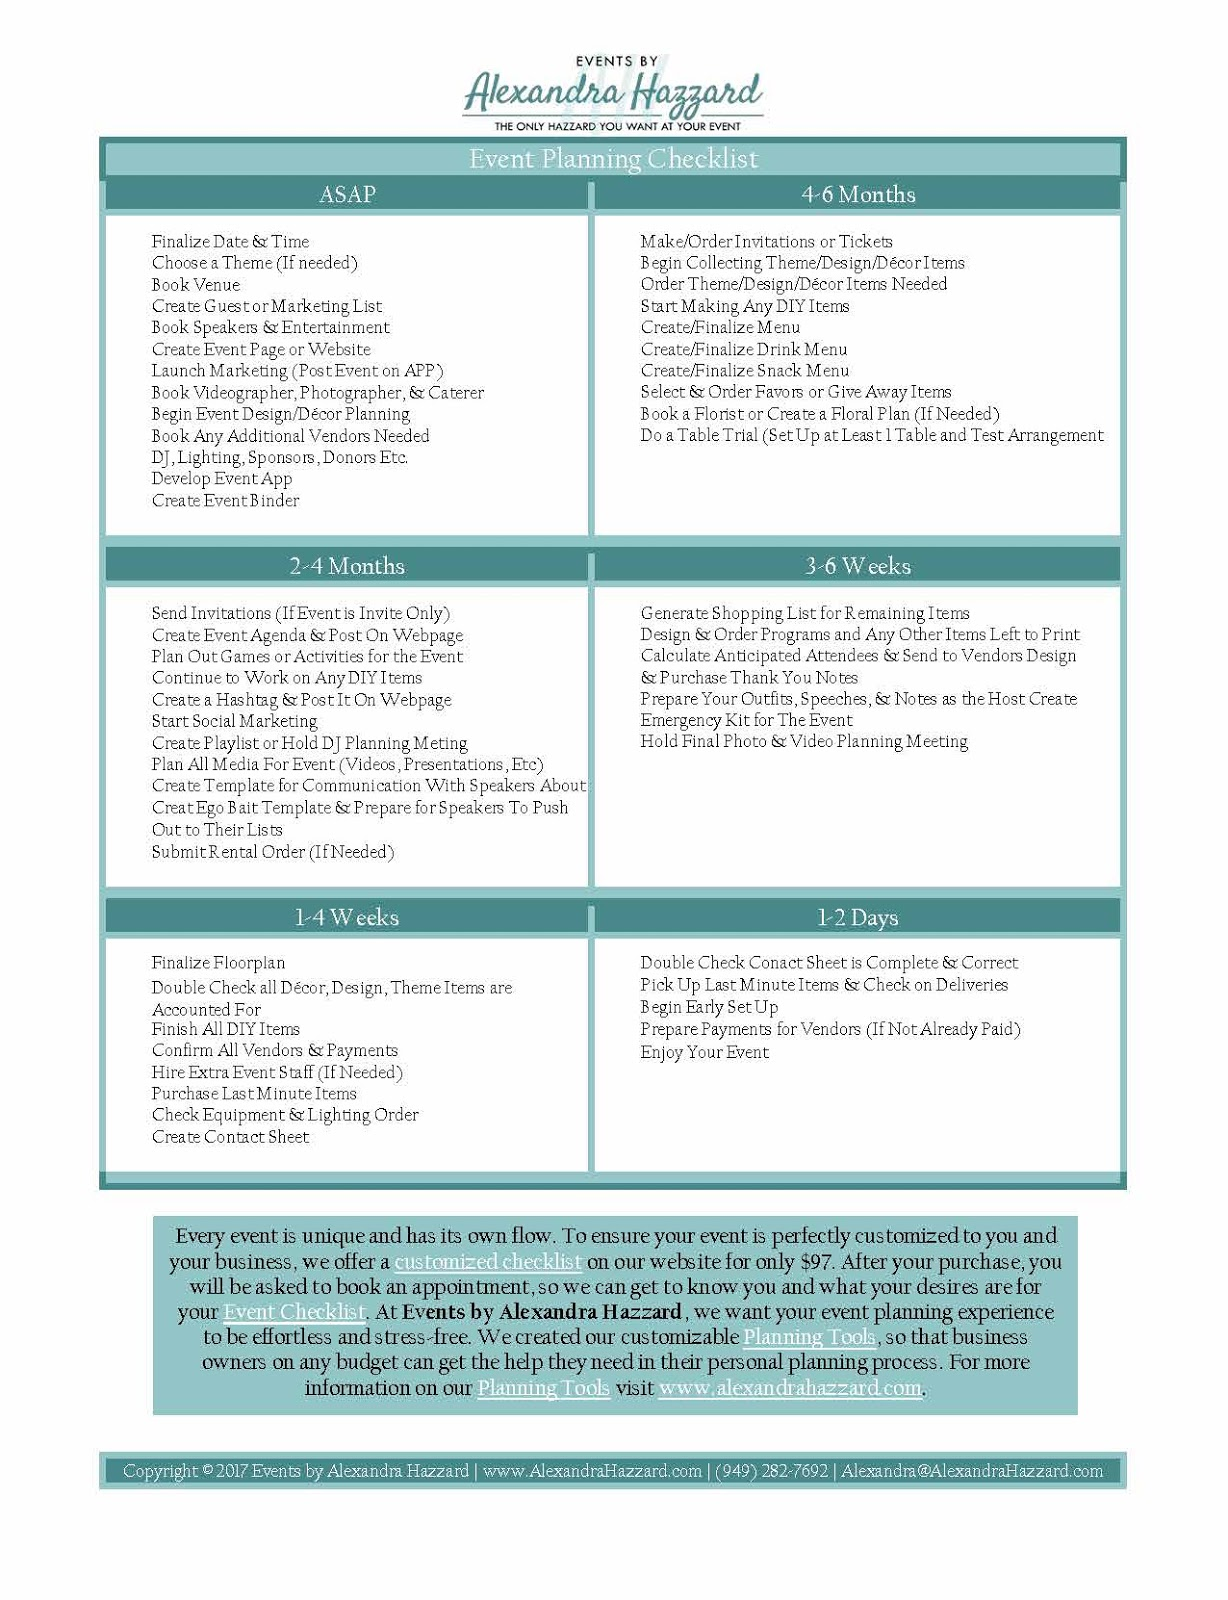 event planner template word 2019, event planner template wordpress, event checklist template word, event schedule template word 2020 , event calendar template wordpress, event plan template word, event calendar template word, events calendar template wordpress, event schedule format word, free event planner template word, event management plan template word